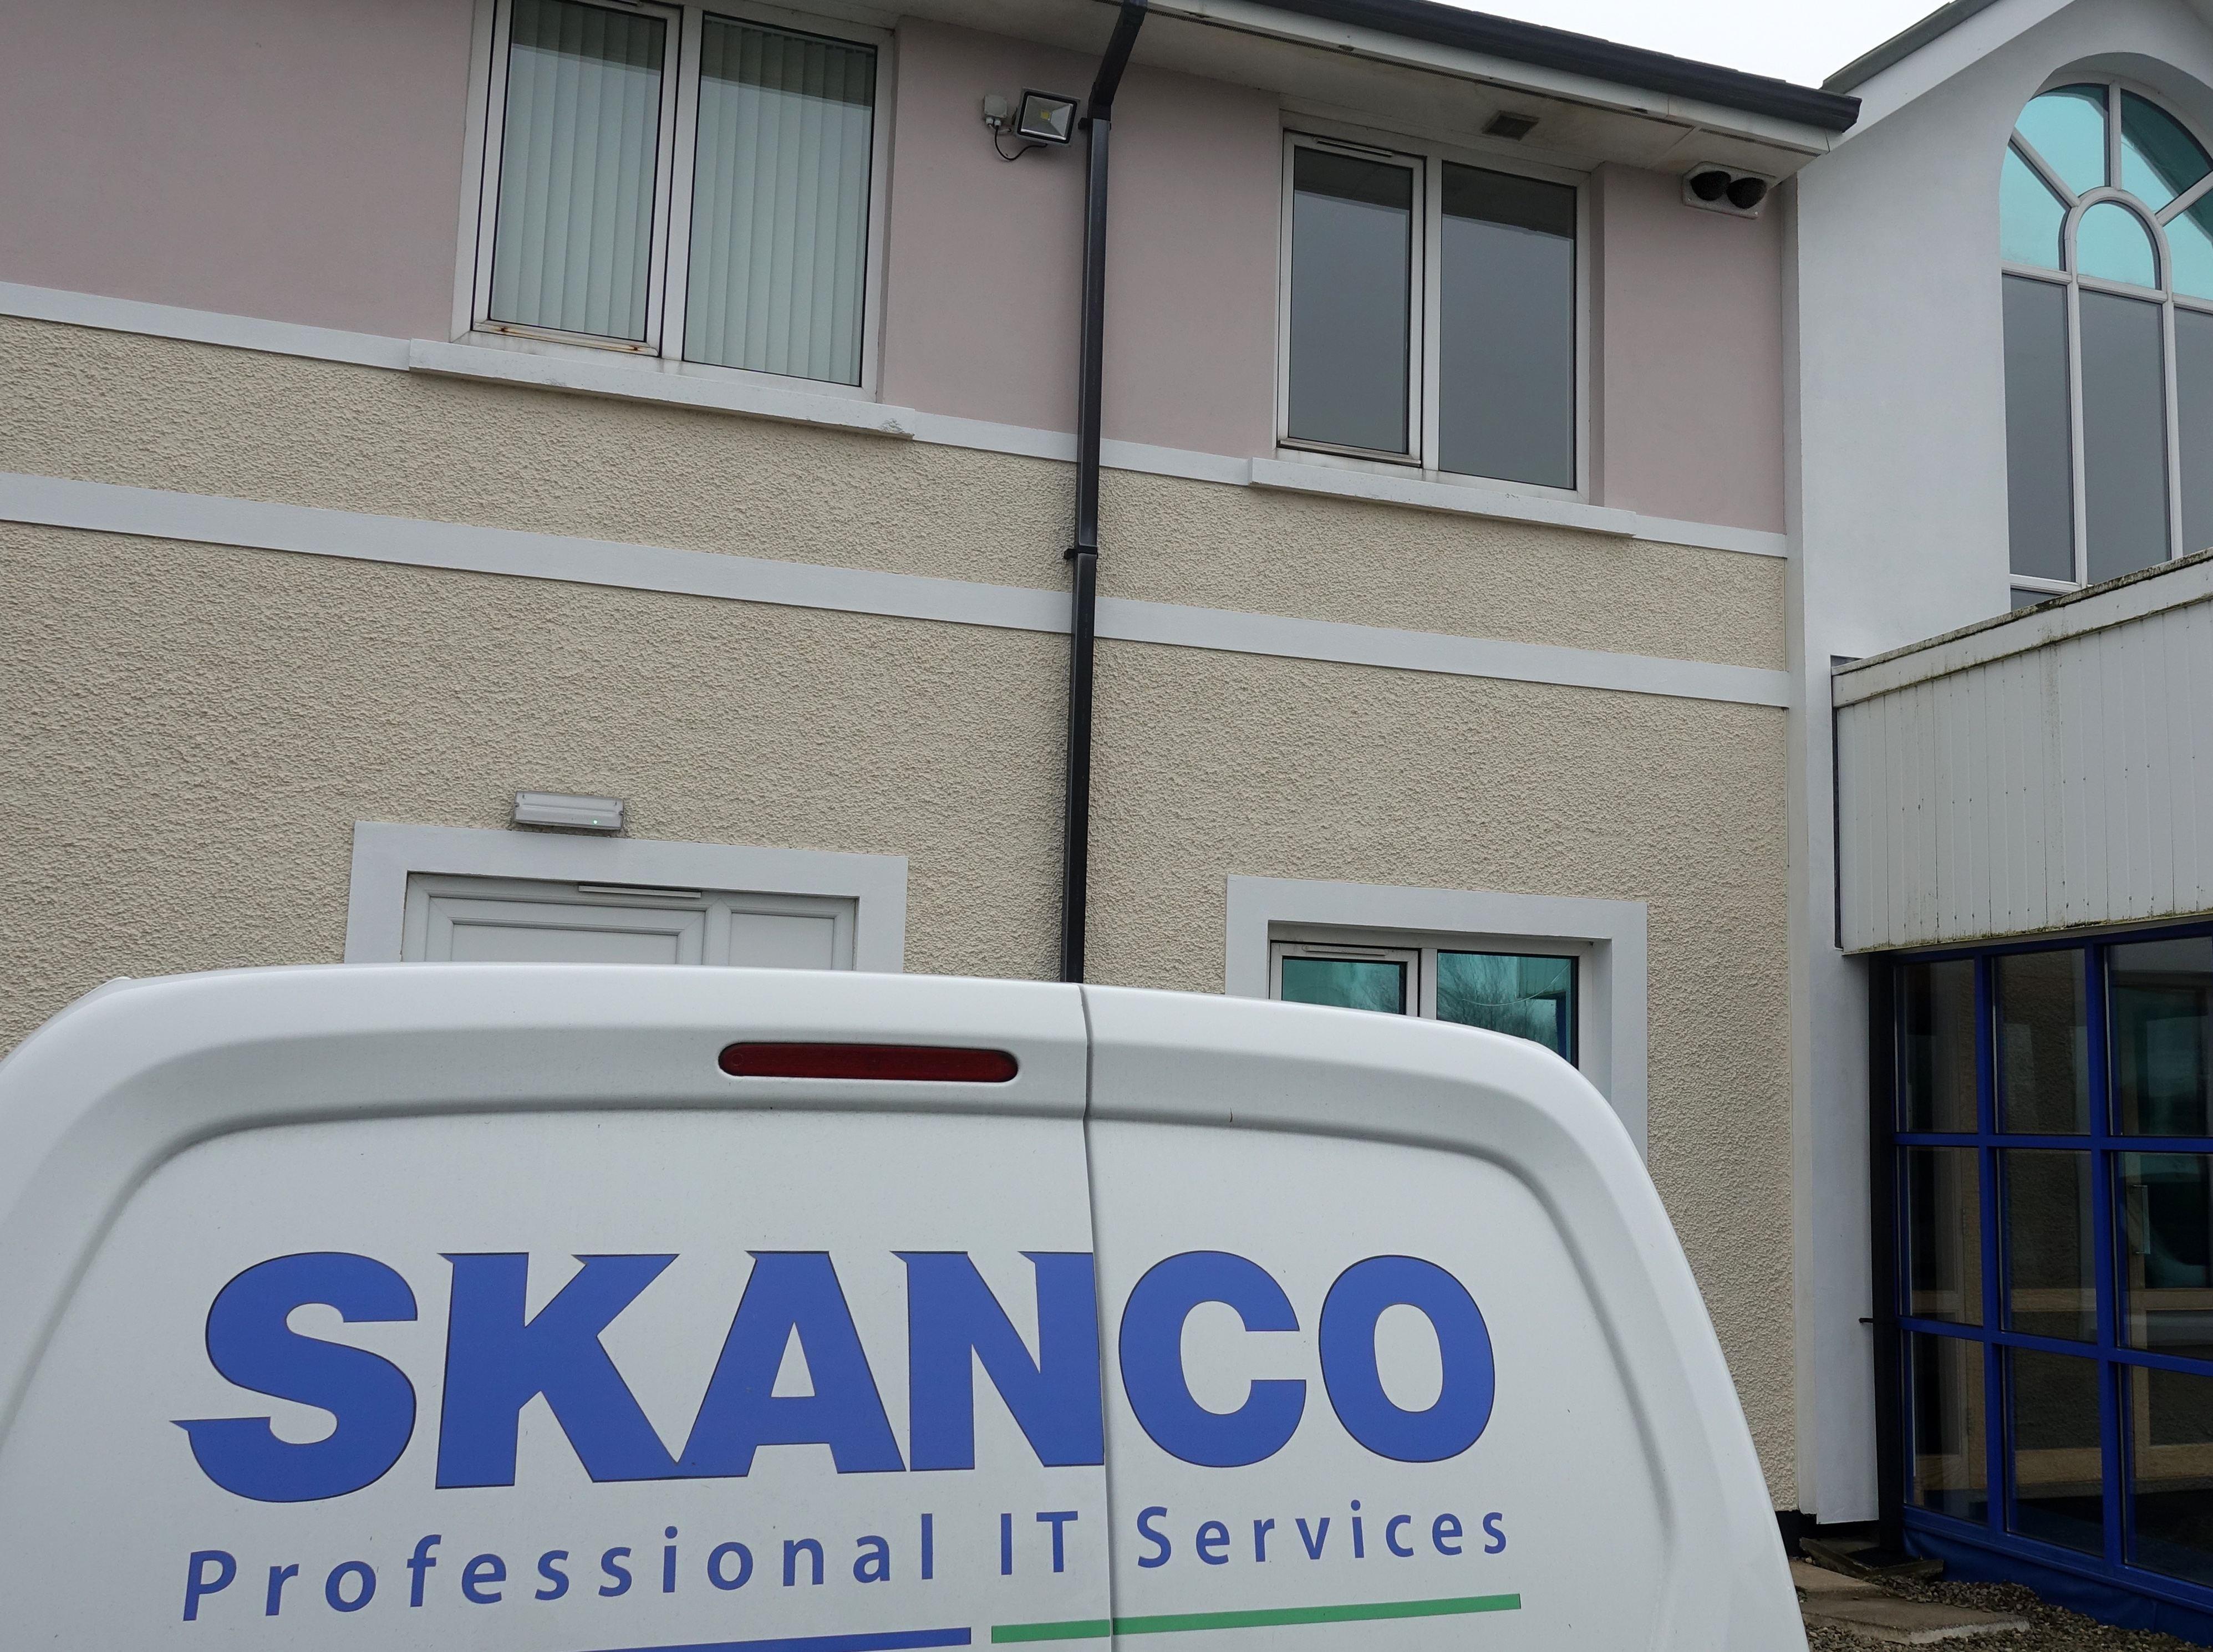 Newly installed House Martin nestboxes under the eaves of Skanco's Business Continuity building